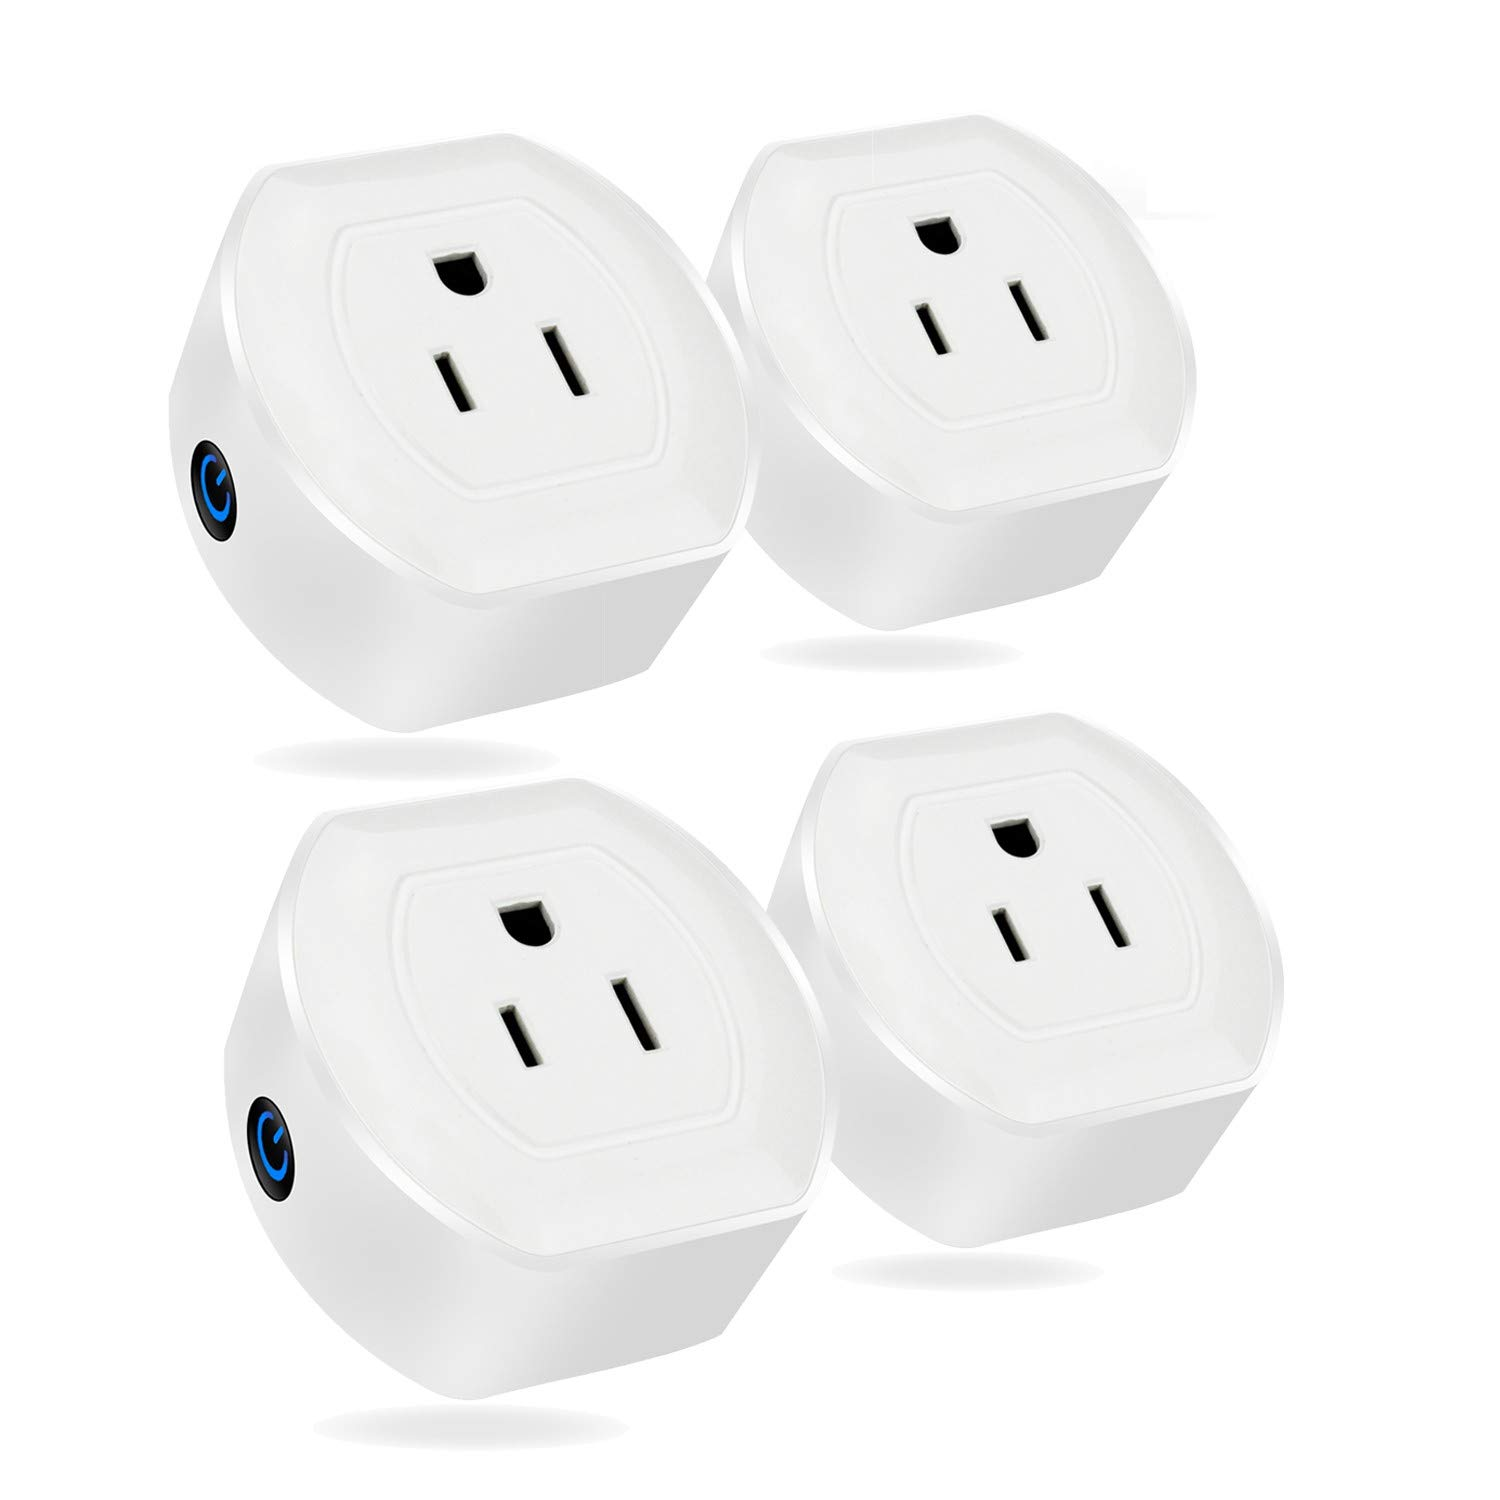 no Hub Required Wifi Smart Socket V04 Google Home MartinJerry Mini Wifi Smart Plugs that Work with Alexa 4 Pack Smart Home Devices to control your appliance from anywhere